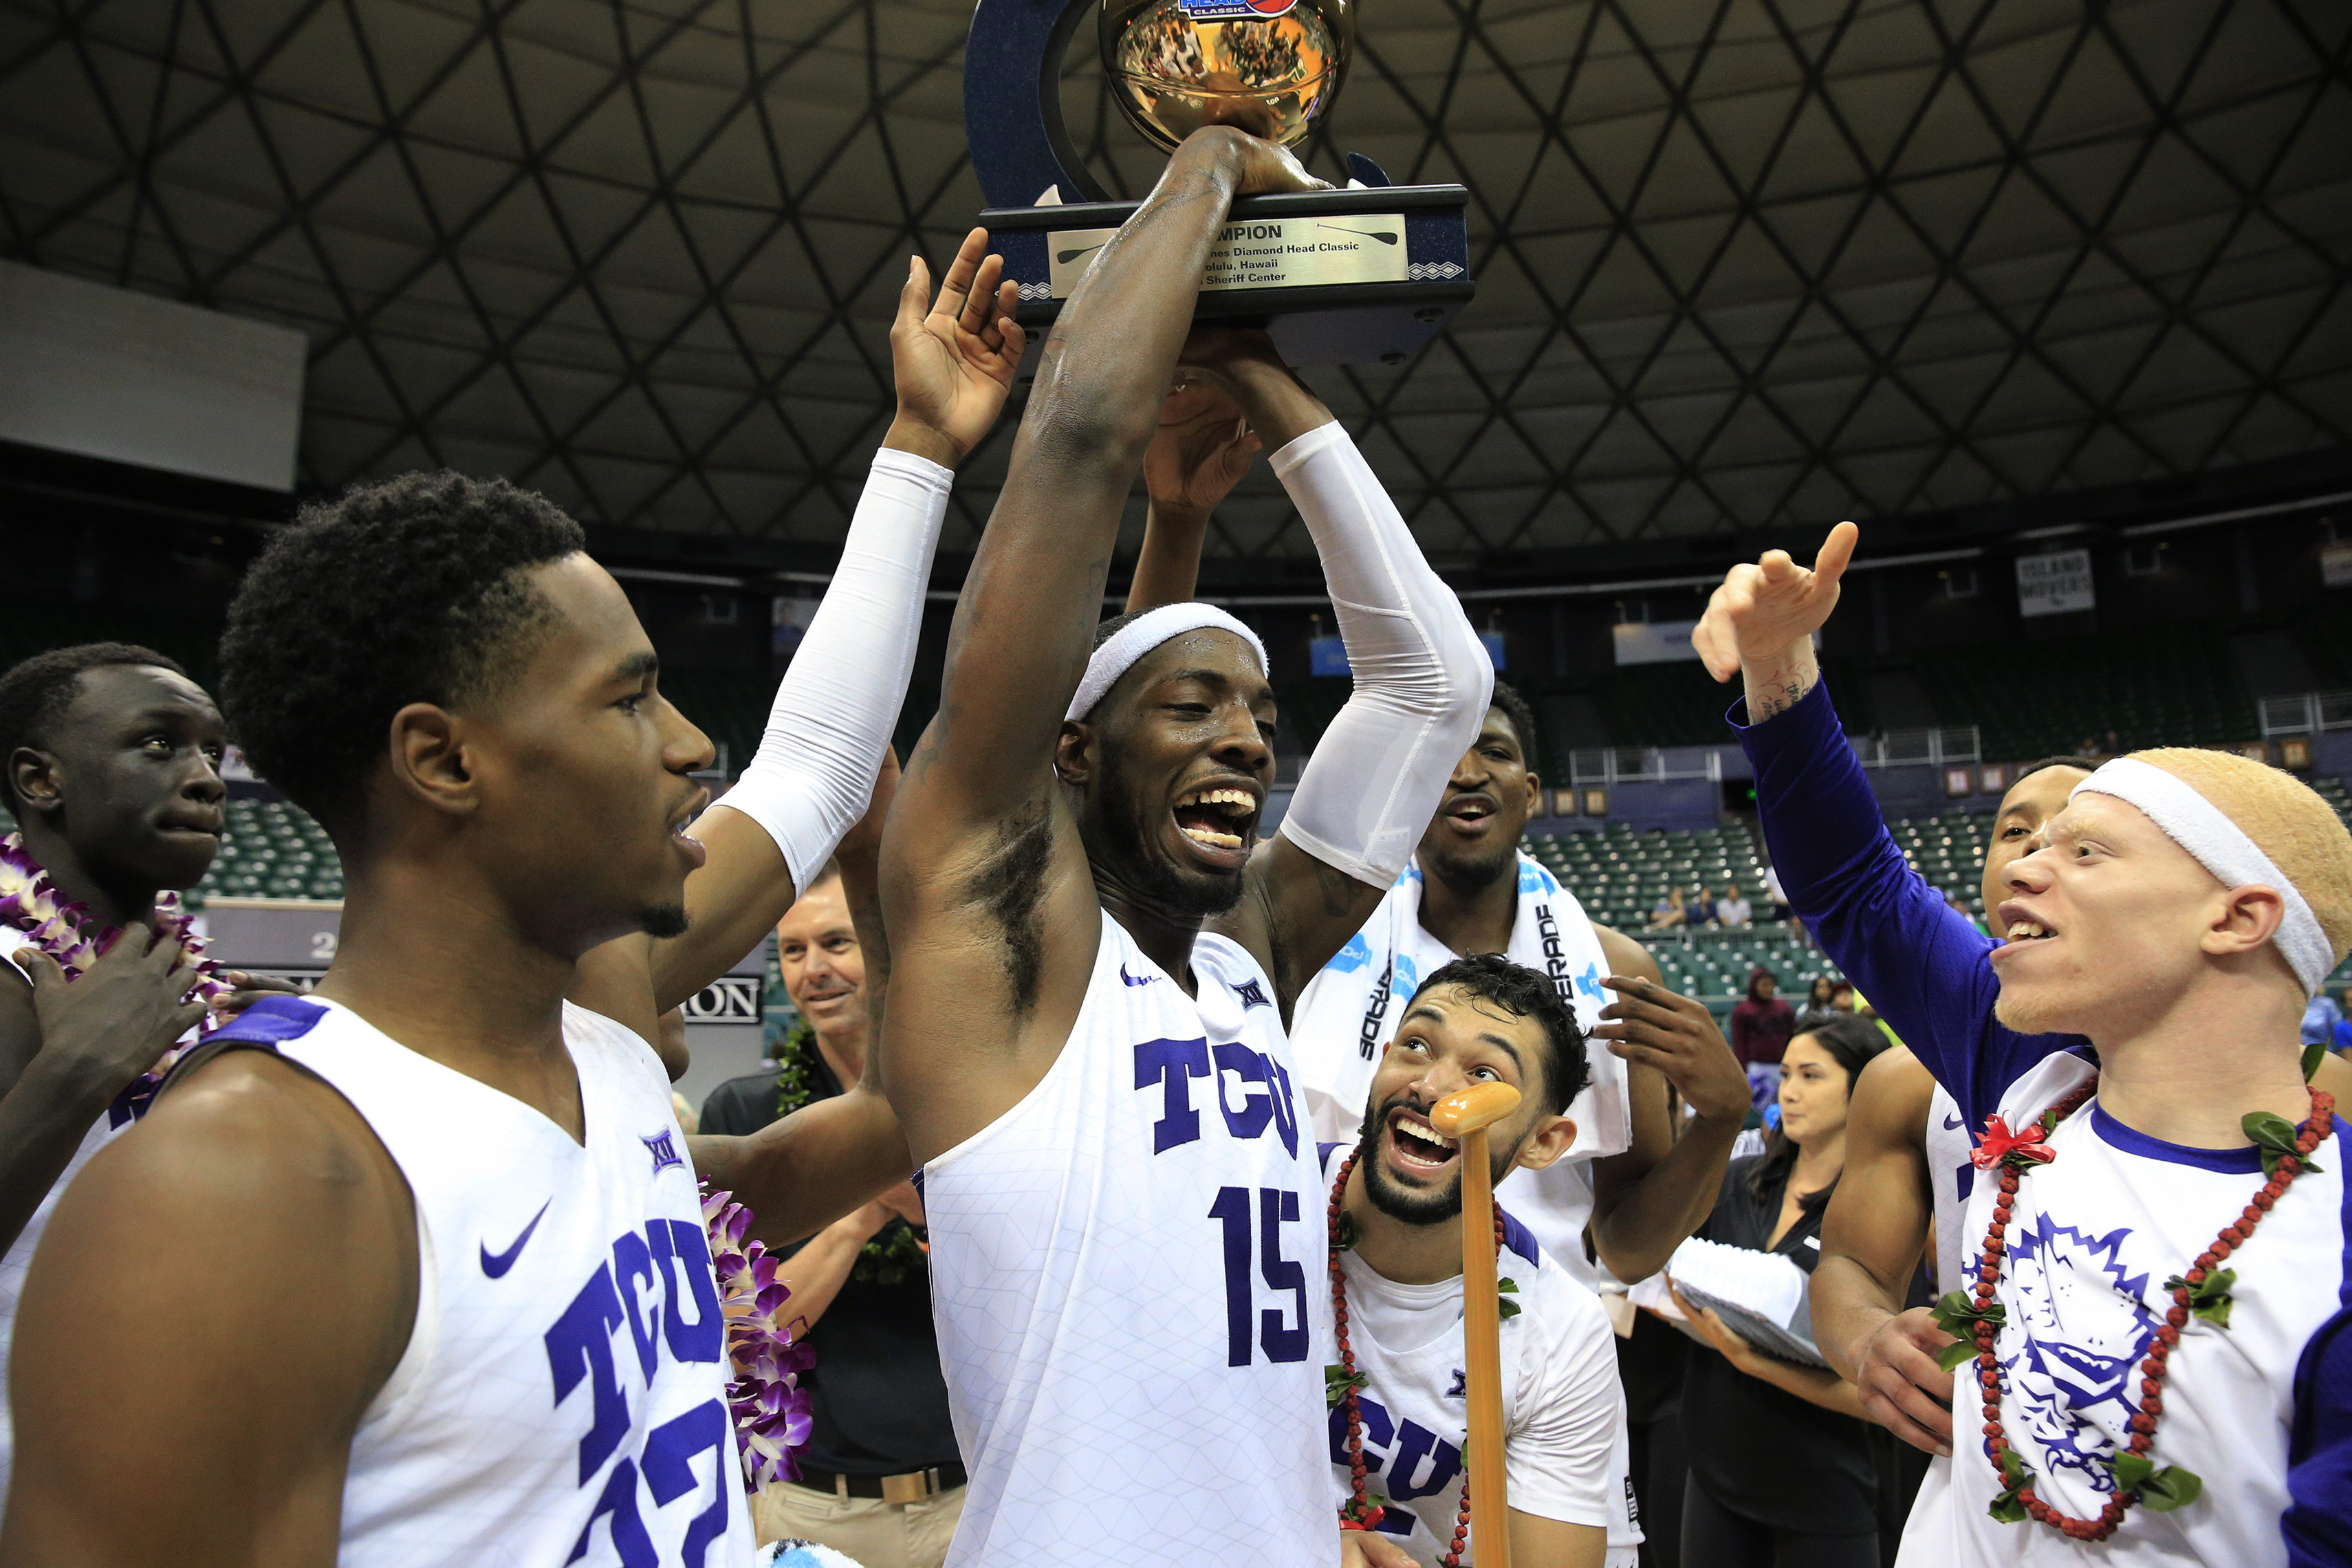 WATCH: TCU wins Diamond Head Classic, Robinson earns Most Outstanding Player honors